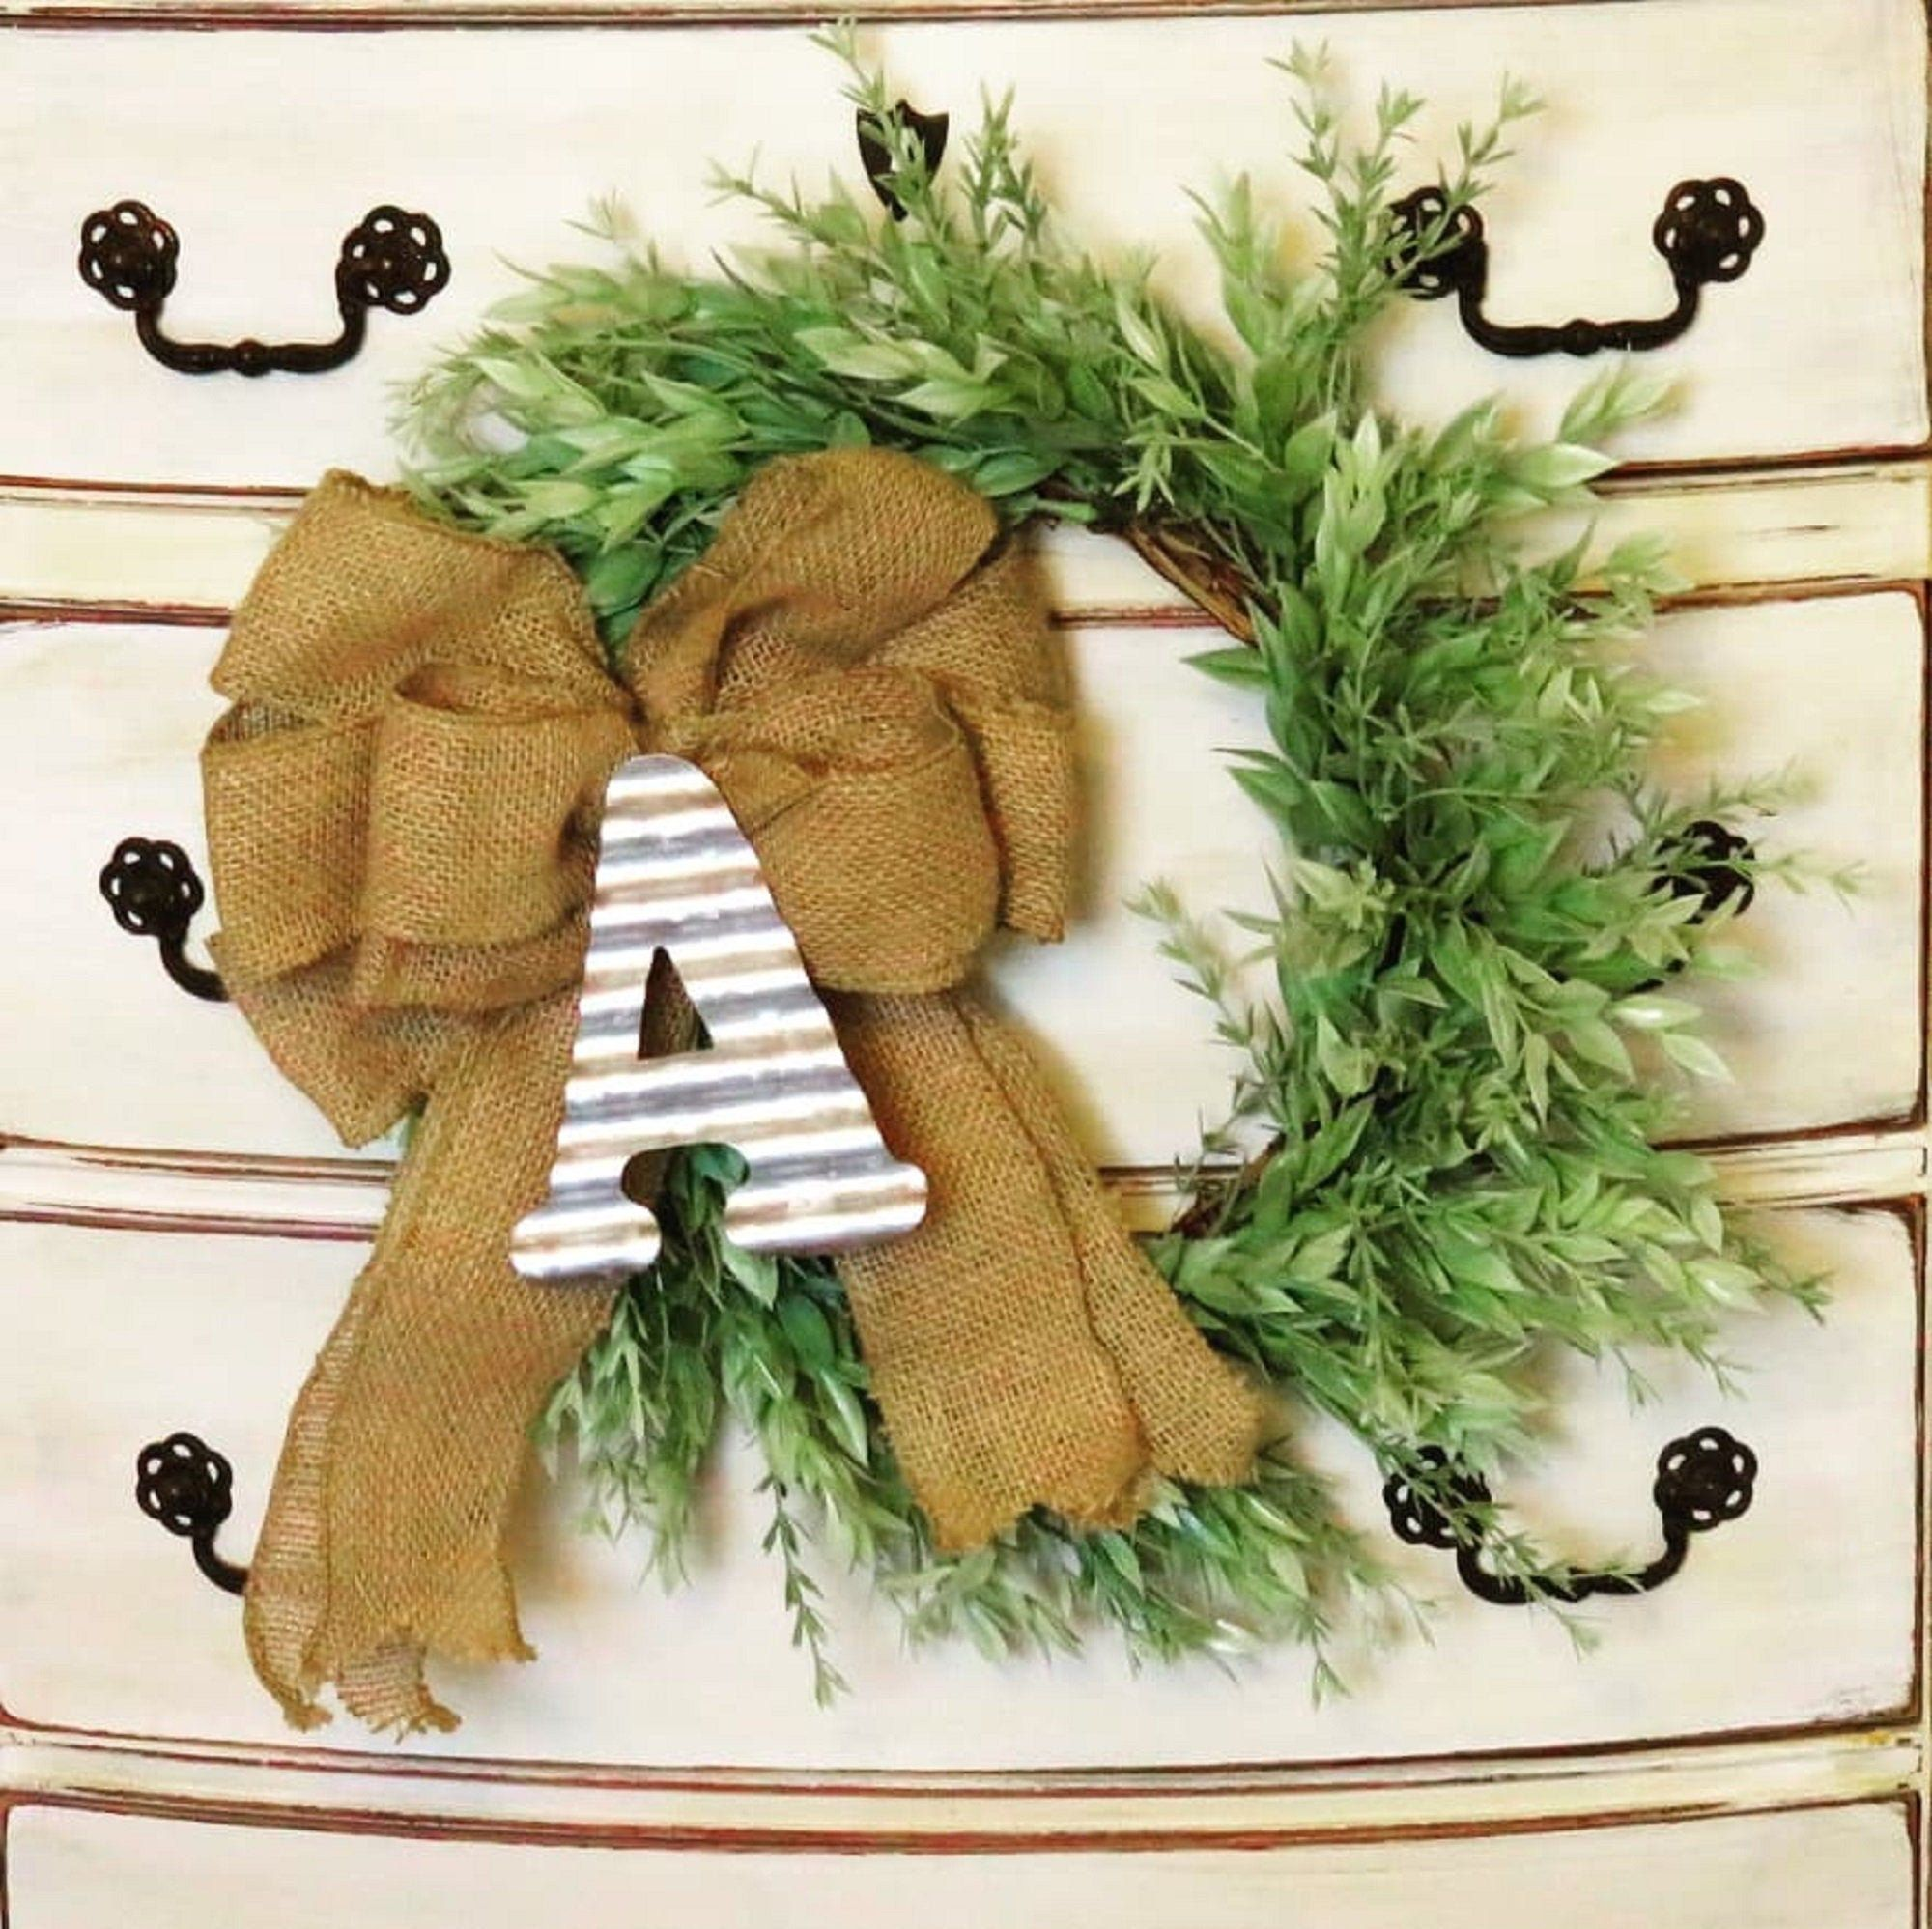 Wreaths Farmhouse Mini Wreath For Front Door Monogrammed Wreath Green Wreath With Bow Faux Wreath Small Wreath Window Housewarming Small Wreaths